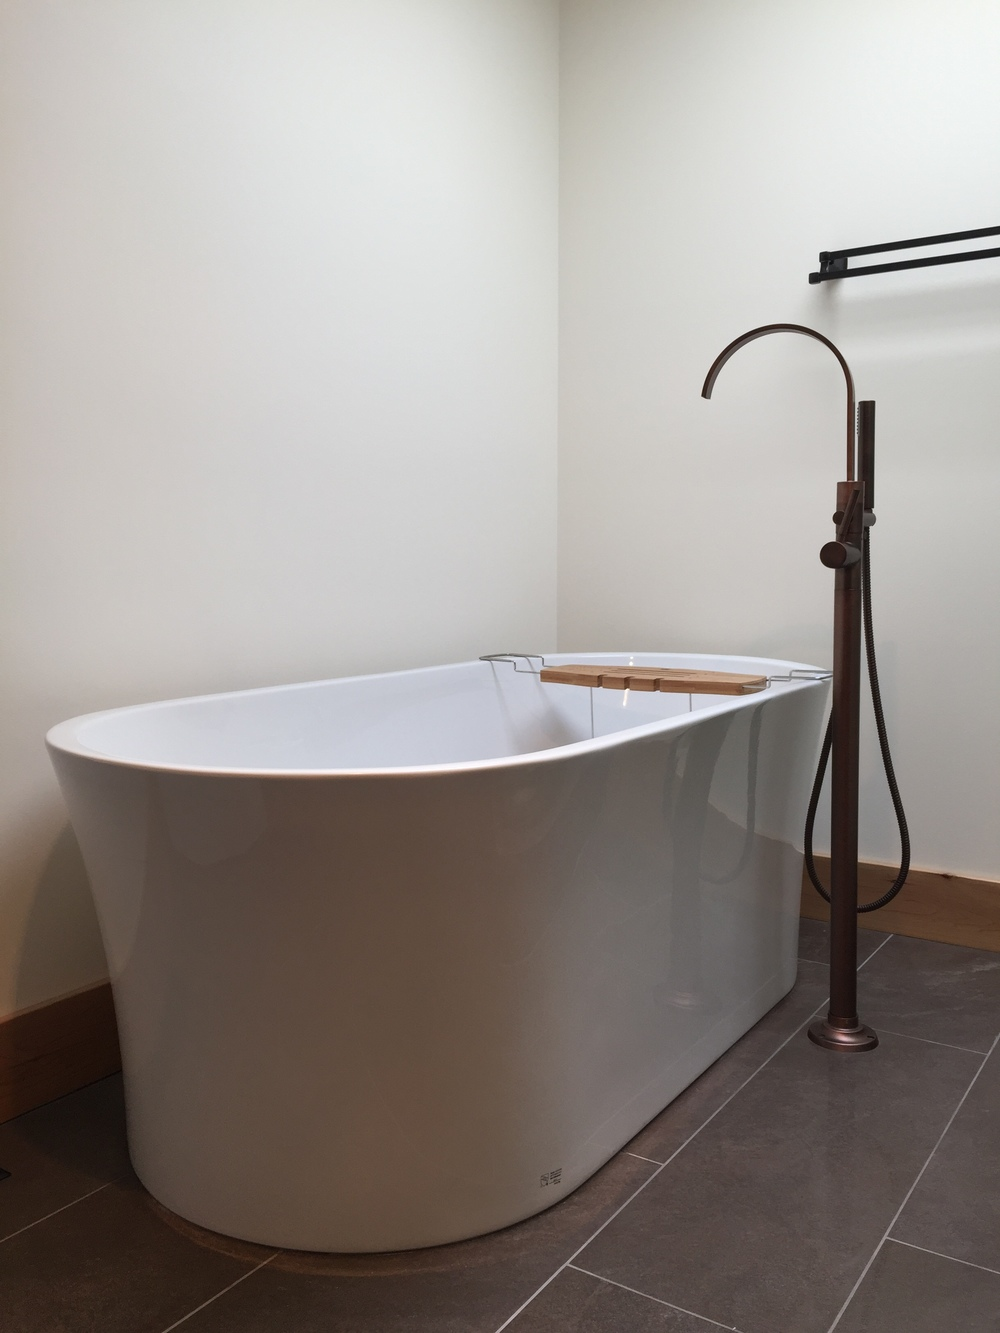 Freestanding acrylic bathtub and antique bronze tub filler, large format polished porcelain tile.